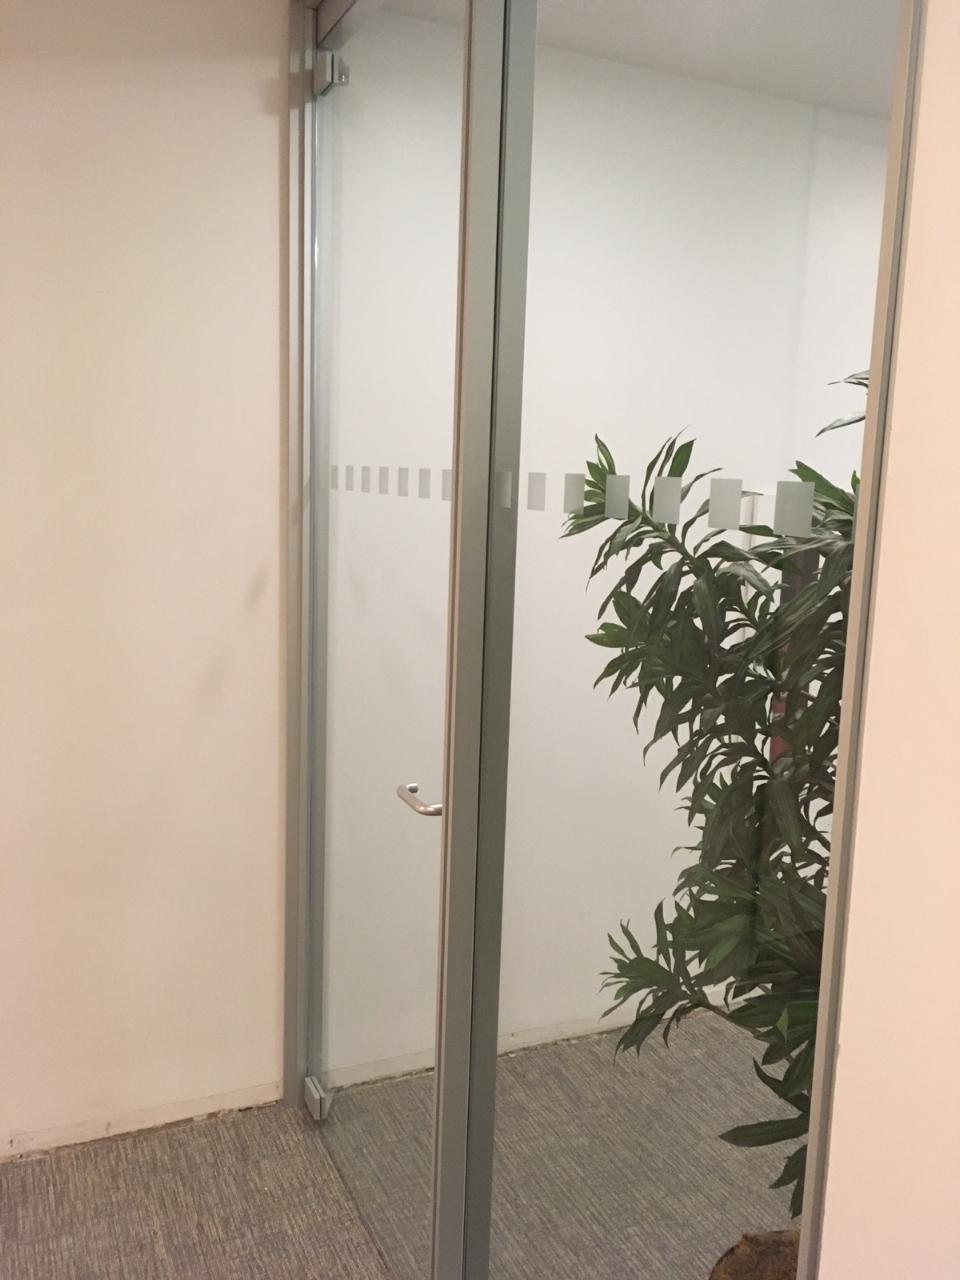 Clear window film with small white squares